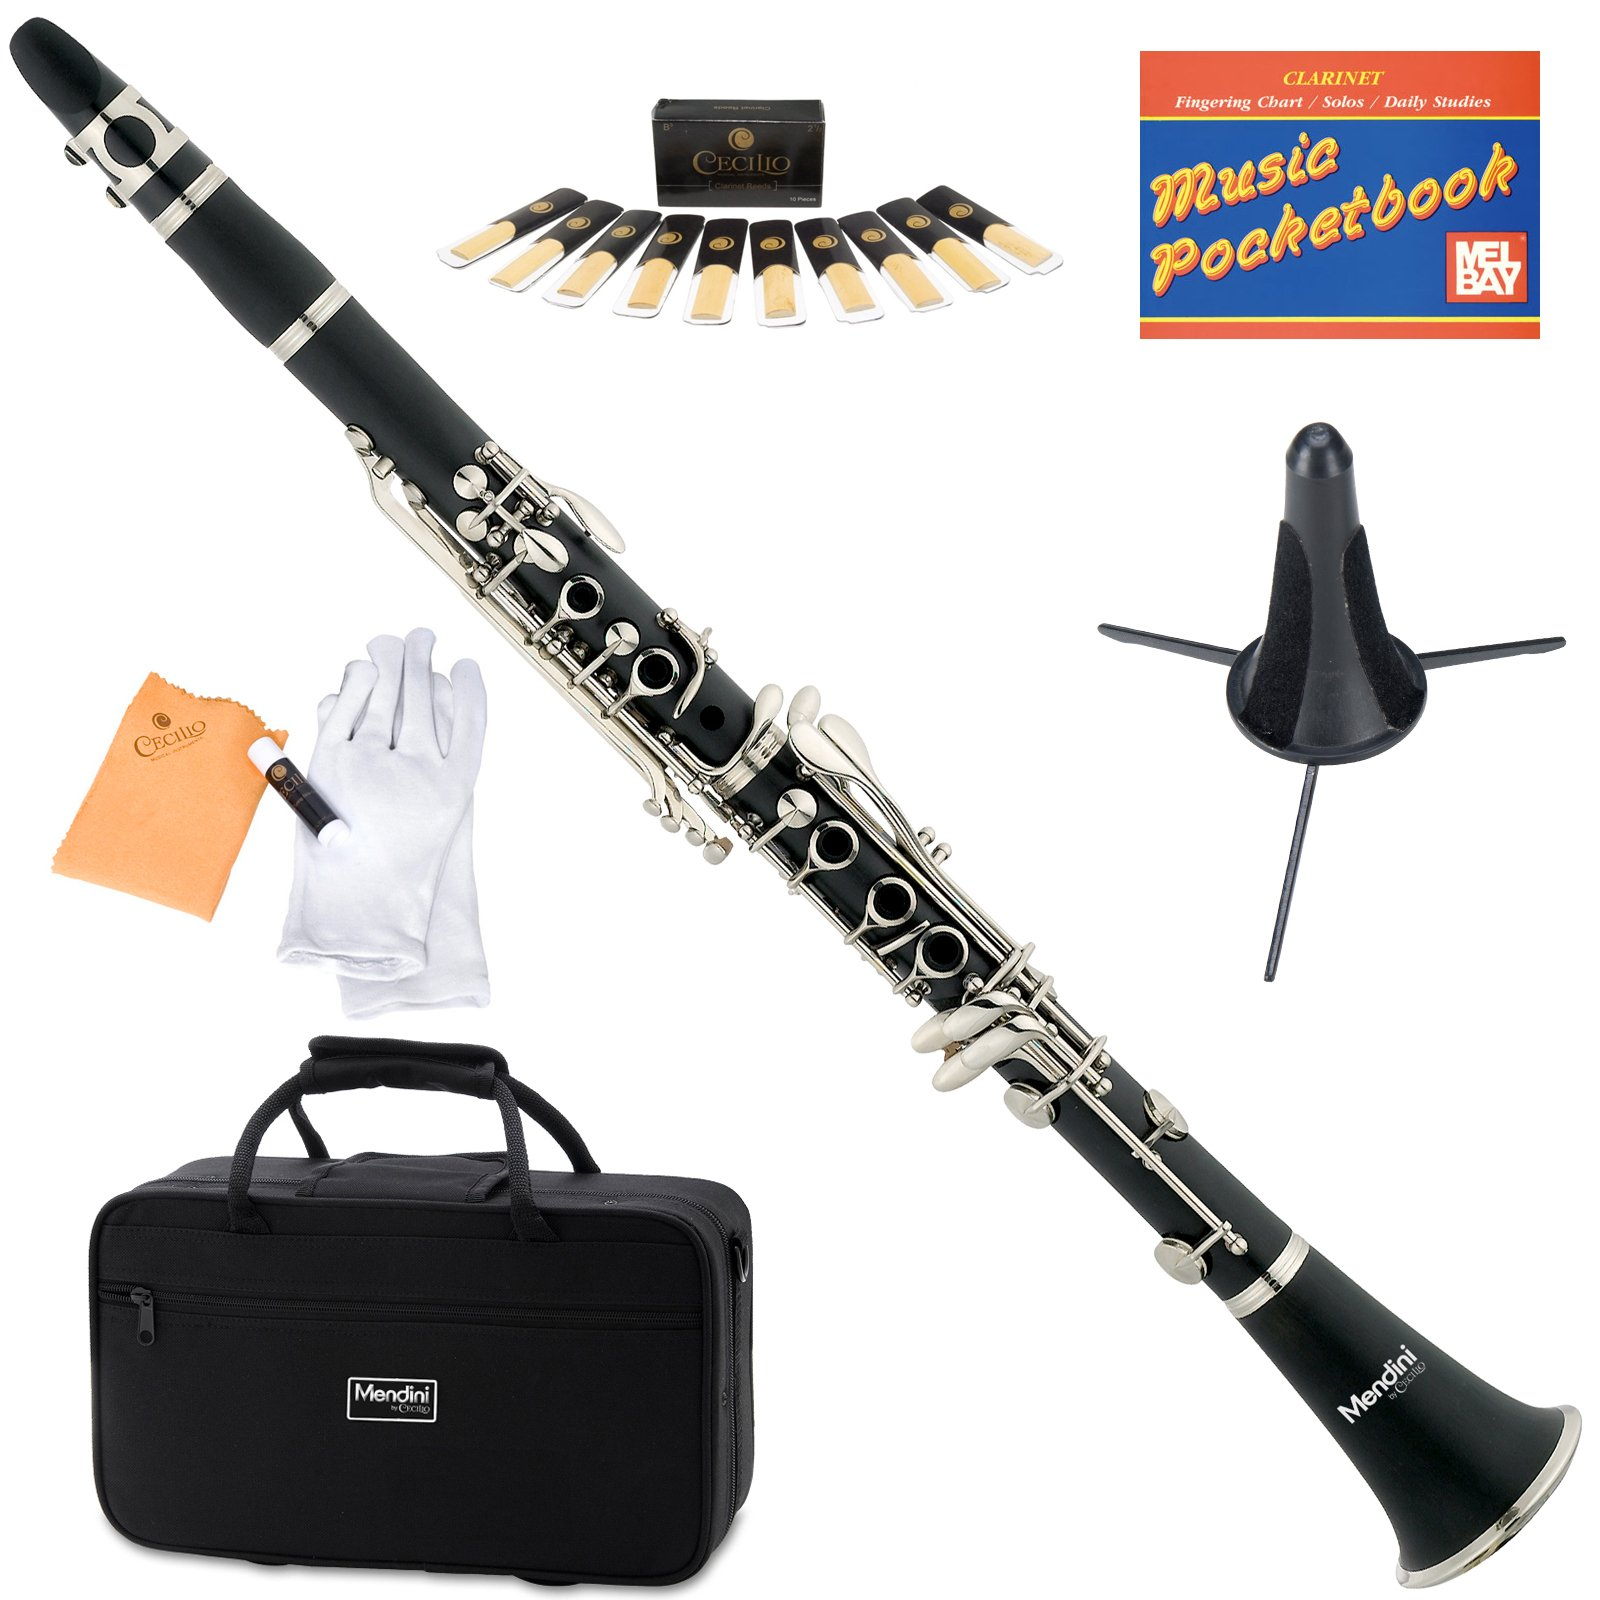 Mendini MCT-E+SD+PB Black Ebonite B Flat Clarinet with Case, Stand, Pocketbook, Mouthpiece, 10 Reeds and More